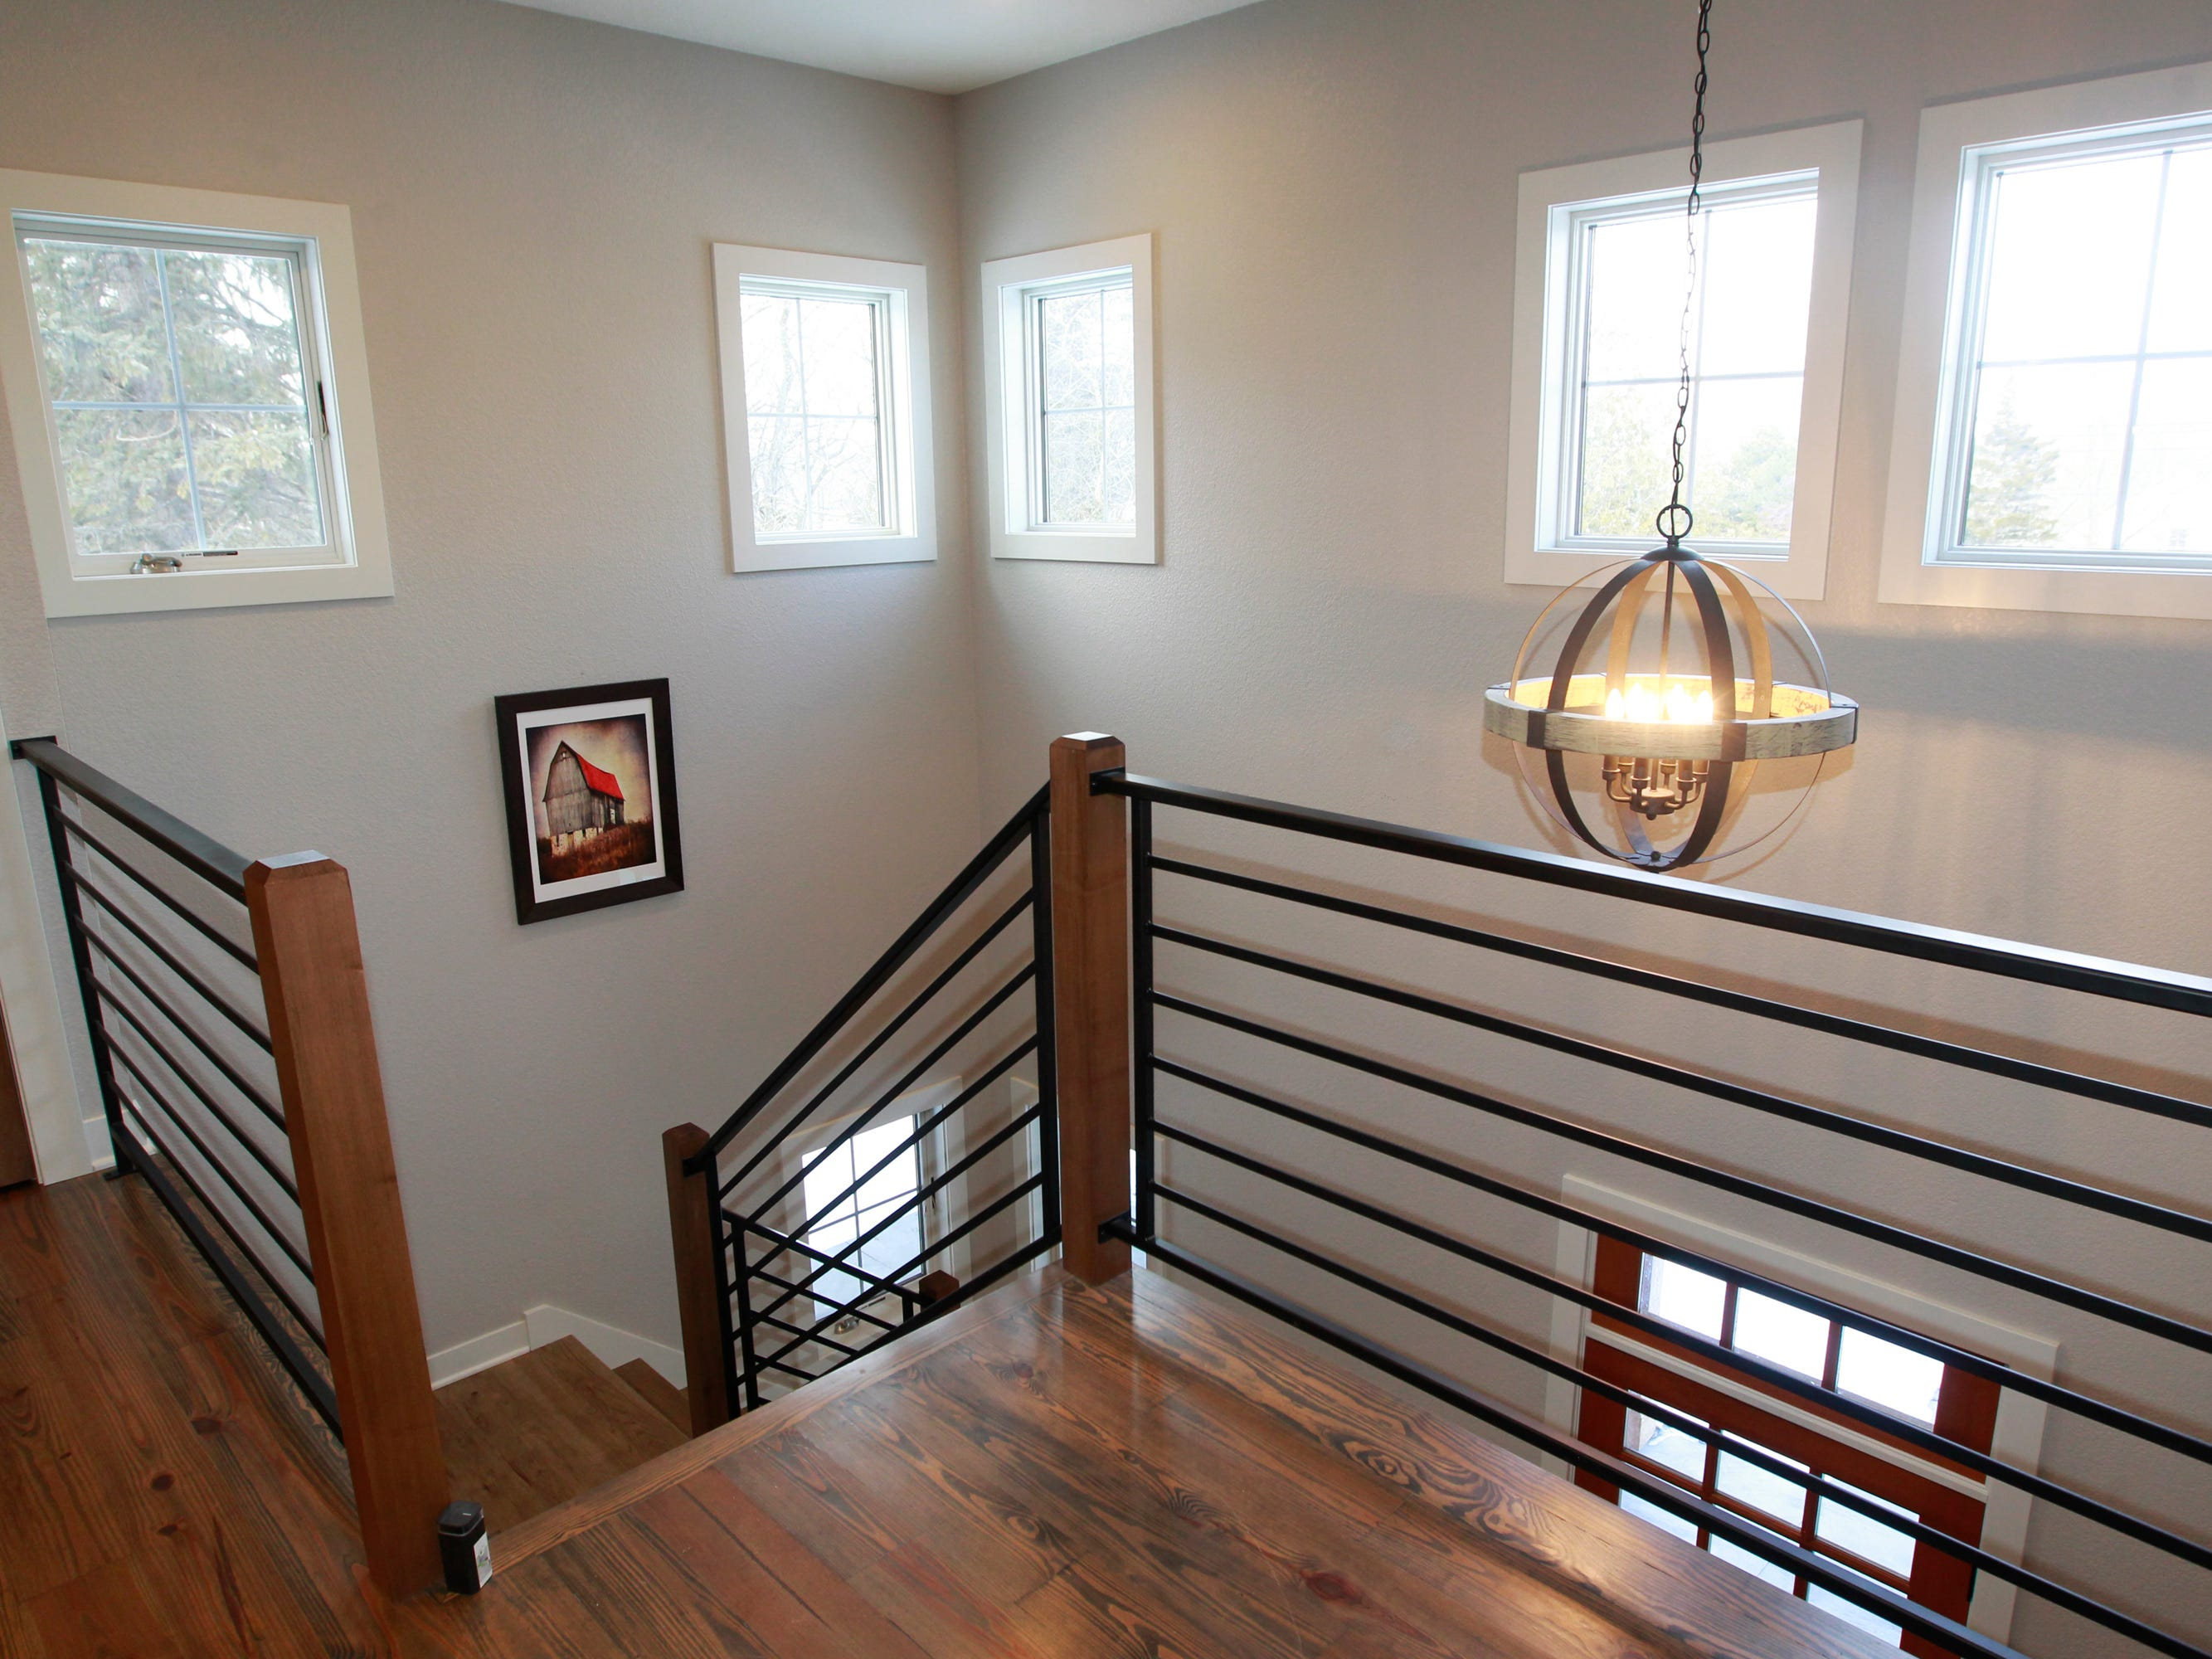 Custom-made metal railings are a modern accent in the farmhouse design of the home.